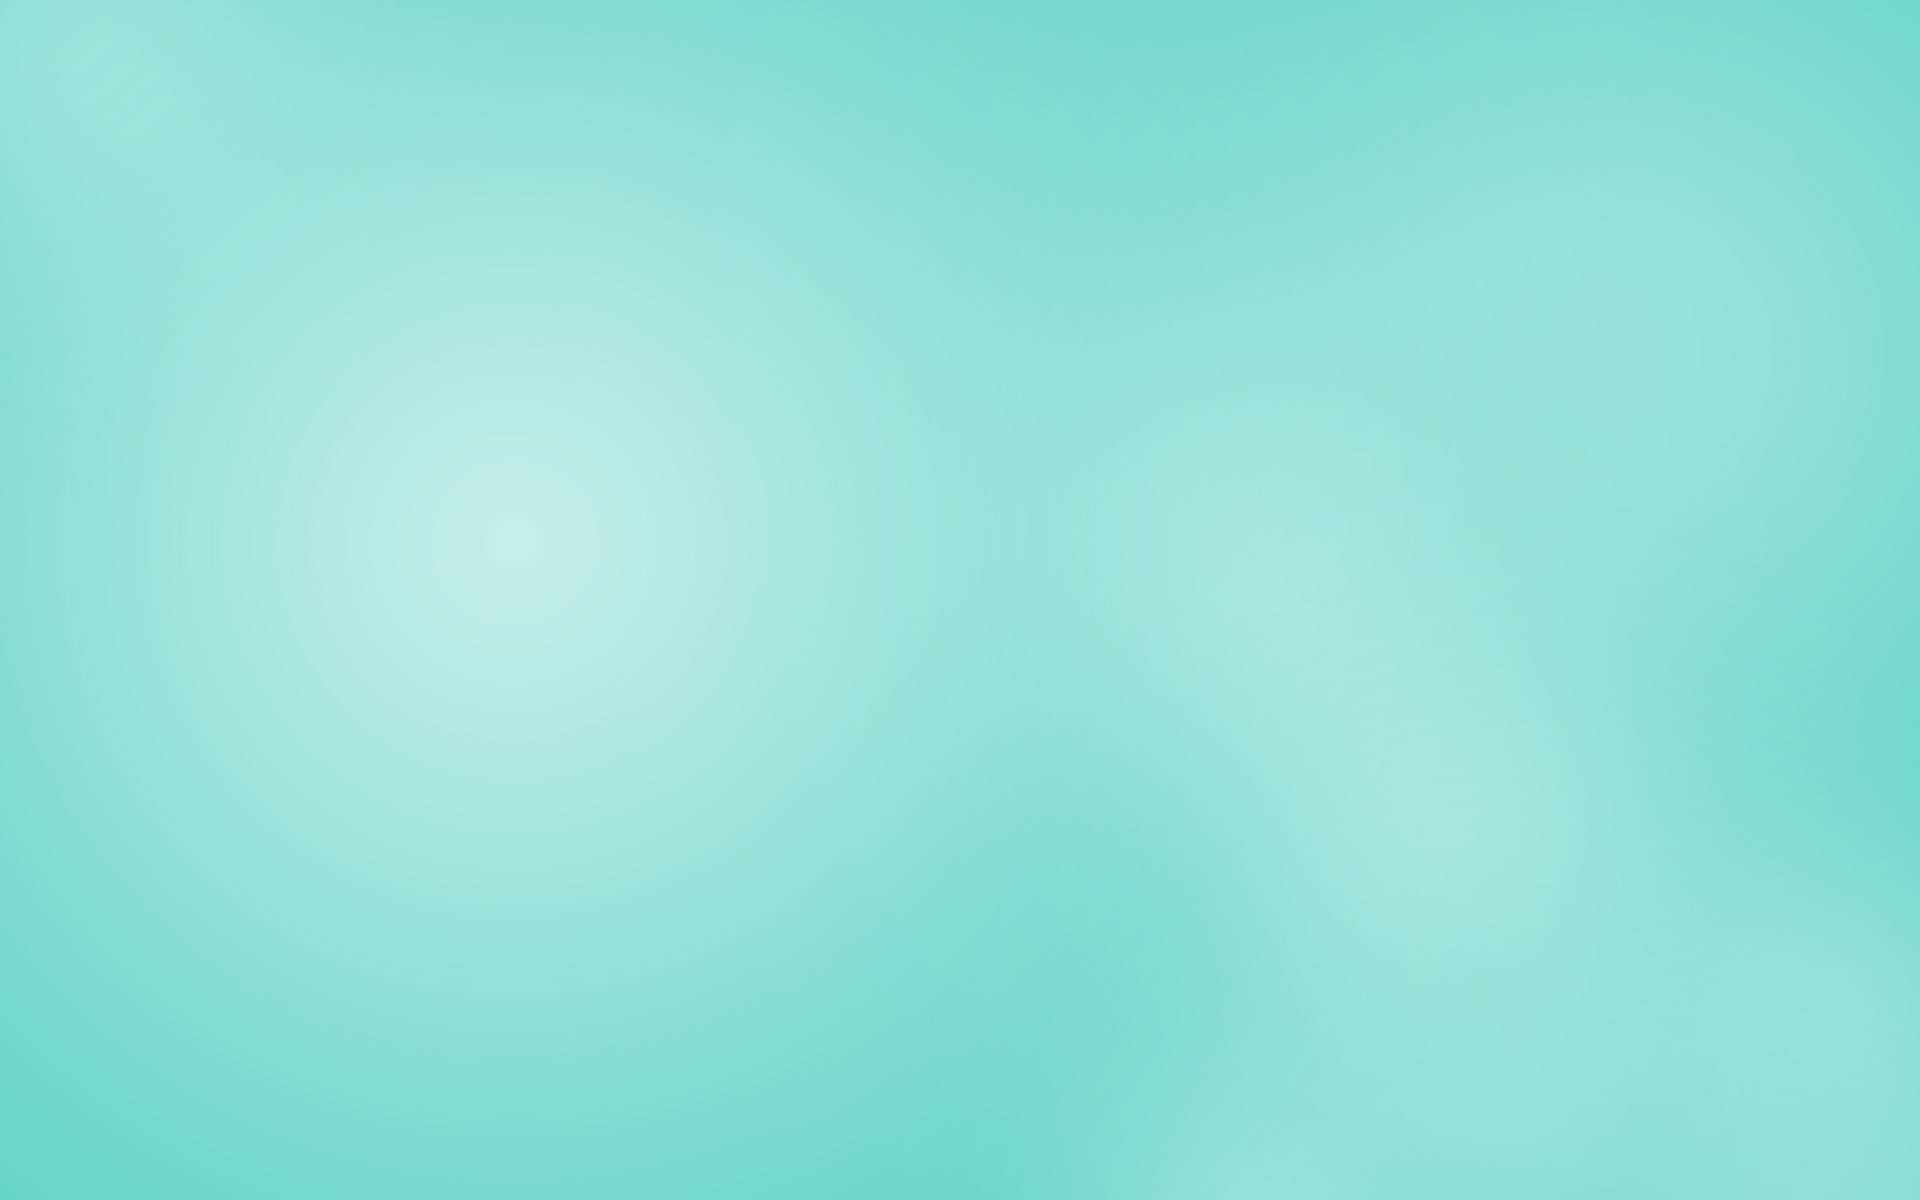 Mint wallpapers wallpapersafari for High quality wallpapers for walls